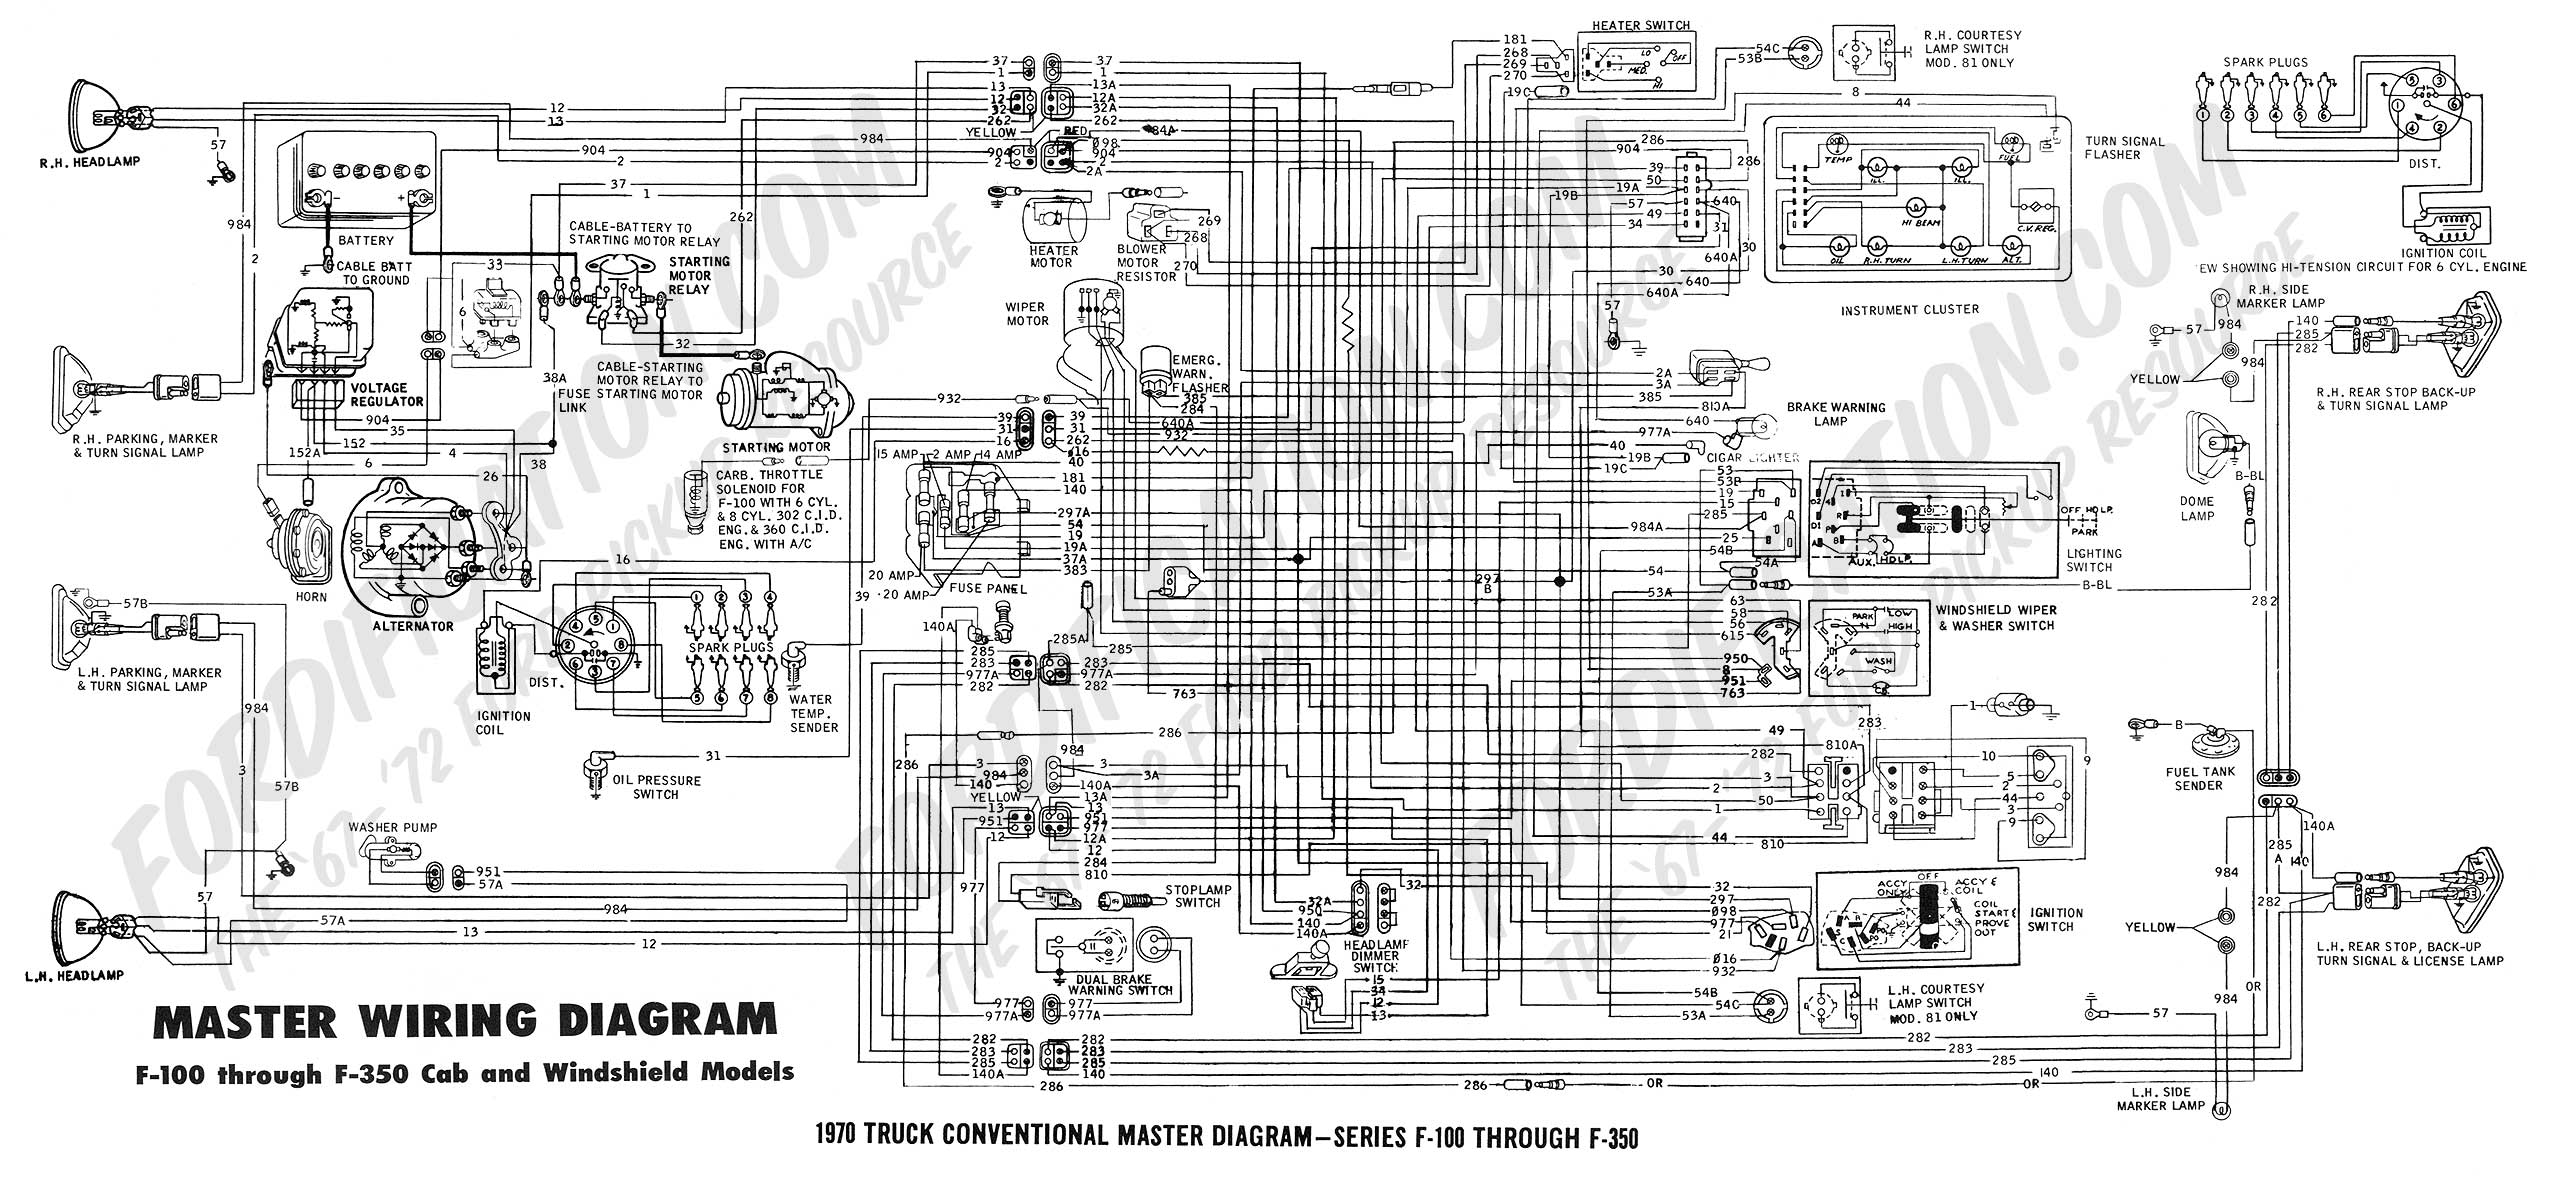 wiring diagram 70_master 2001 ford expedition wiring diagram efcaviation com 2001 f350 wiring diagram at pacquiaovsvargaslive.co